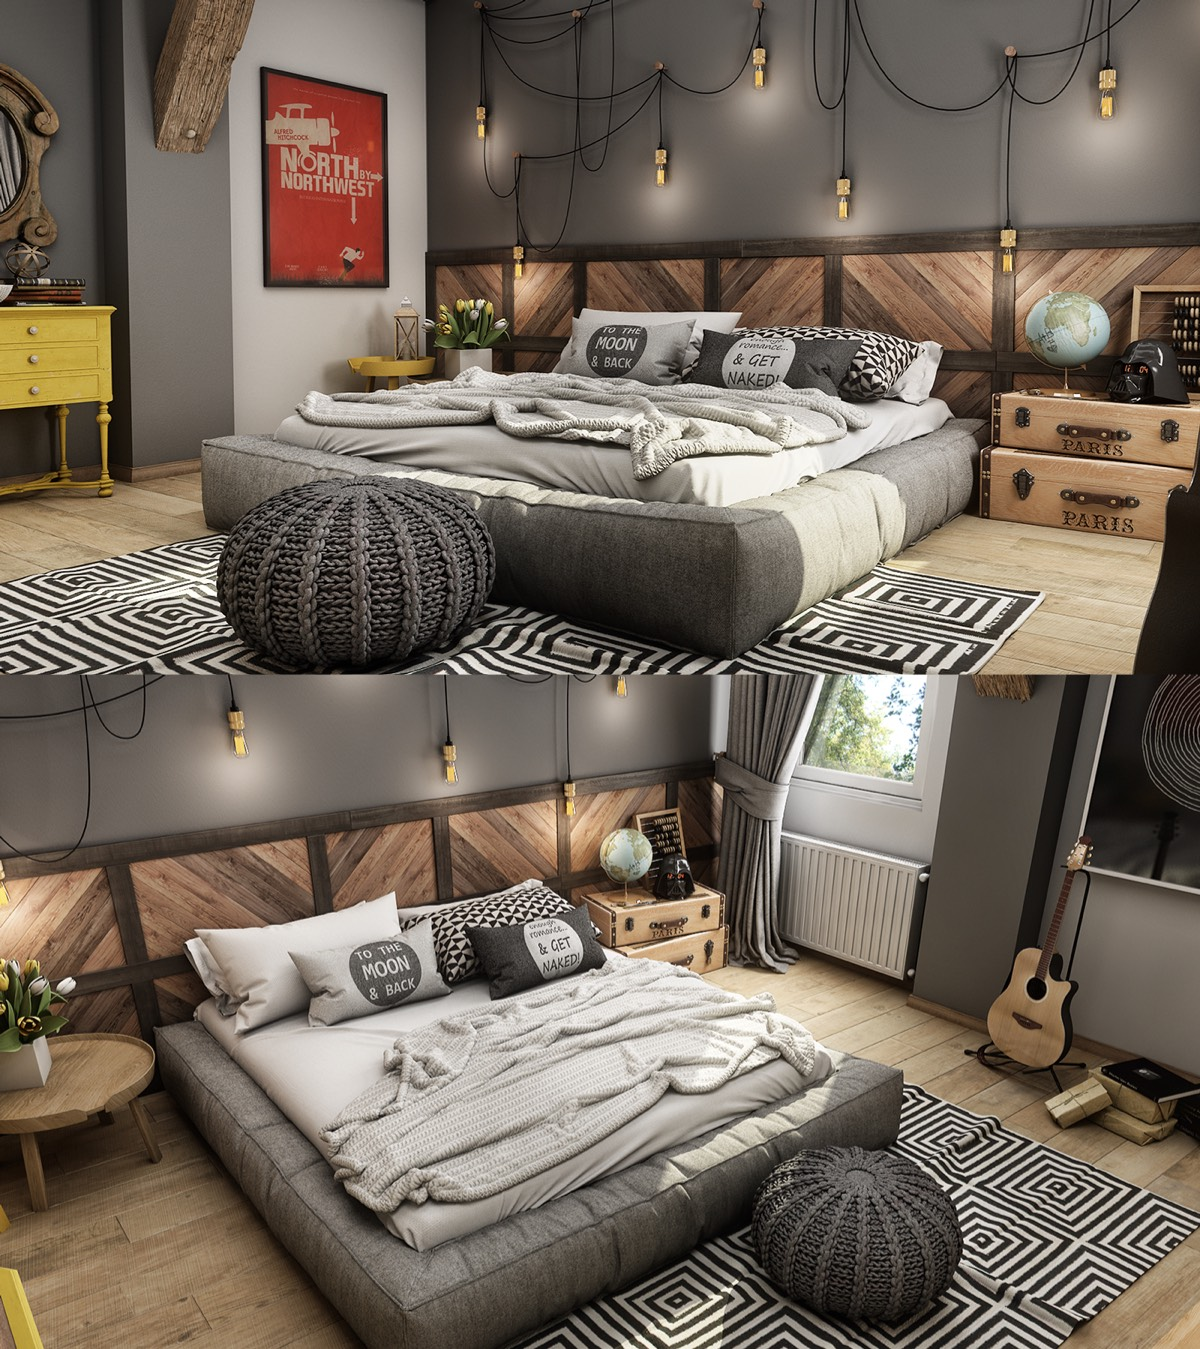 7 Teenage Bedroom Design Ideas Which Is Cool and Unique ... on Teenager Room Decor  id=82727